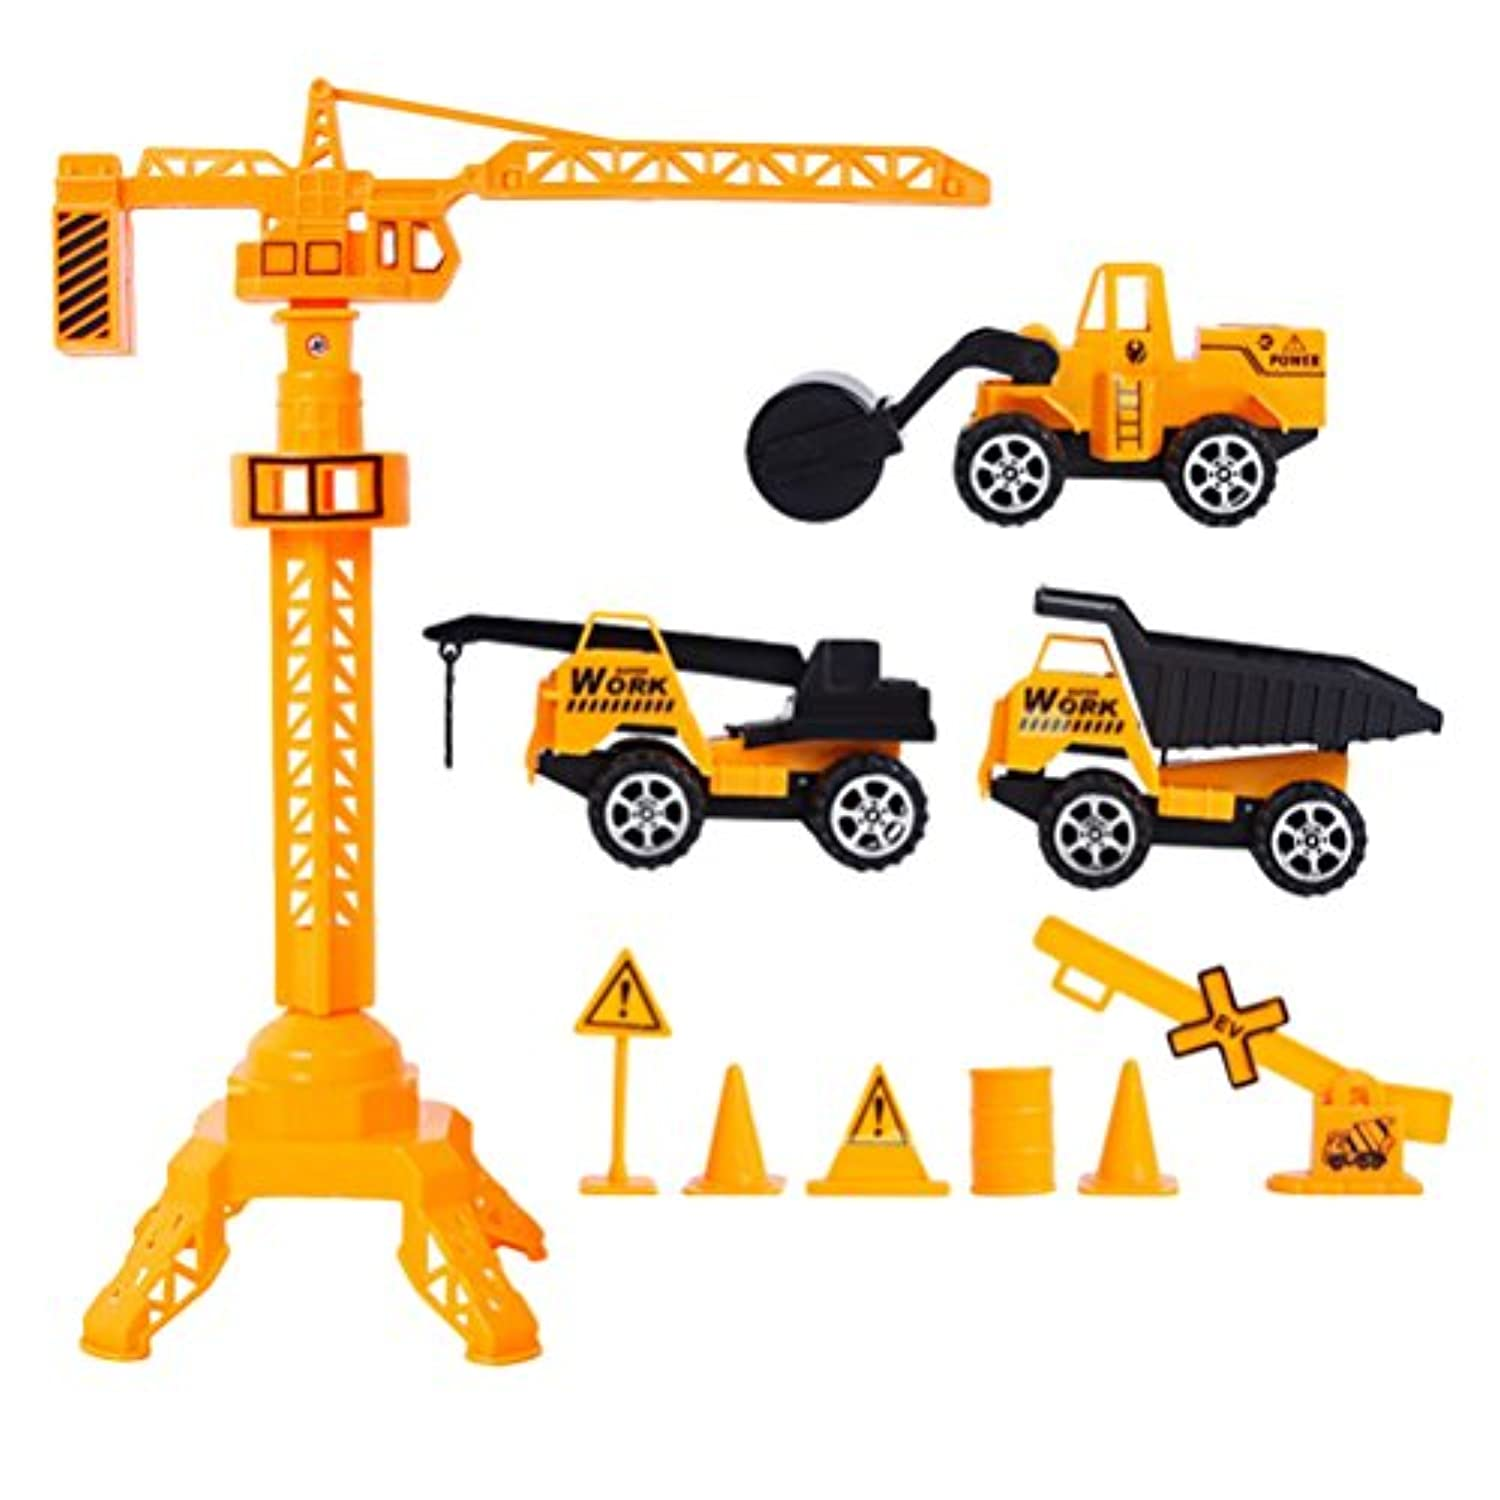 Zhhlinyuan ベスト Full Back Cars Mini Team Force Children Kids Track Model Playsets Toys Supplies 誕生日プレゼント for Boys